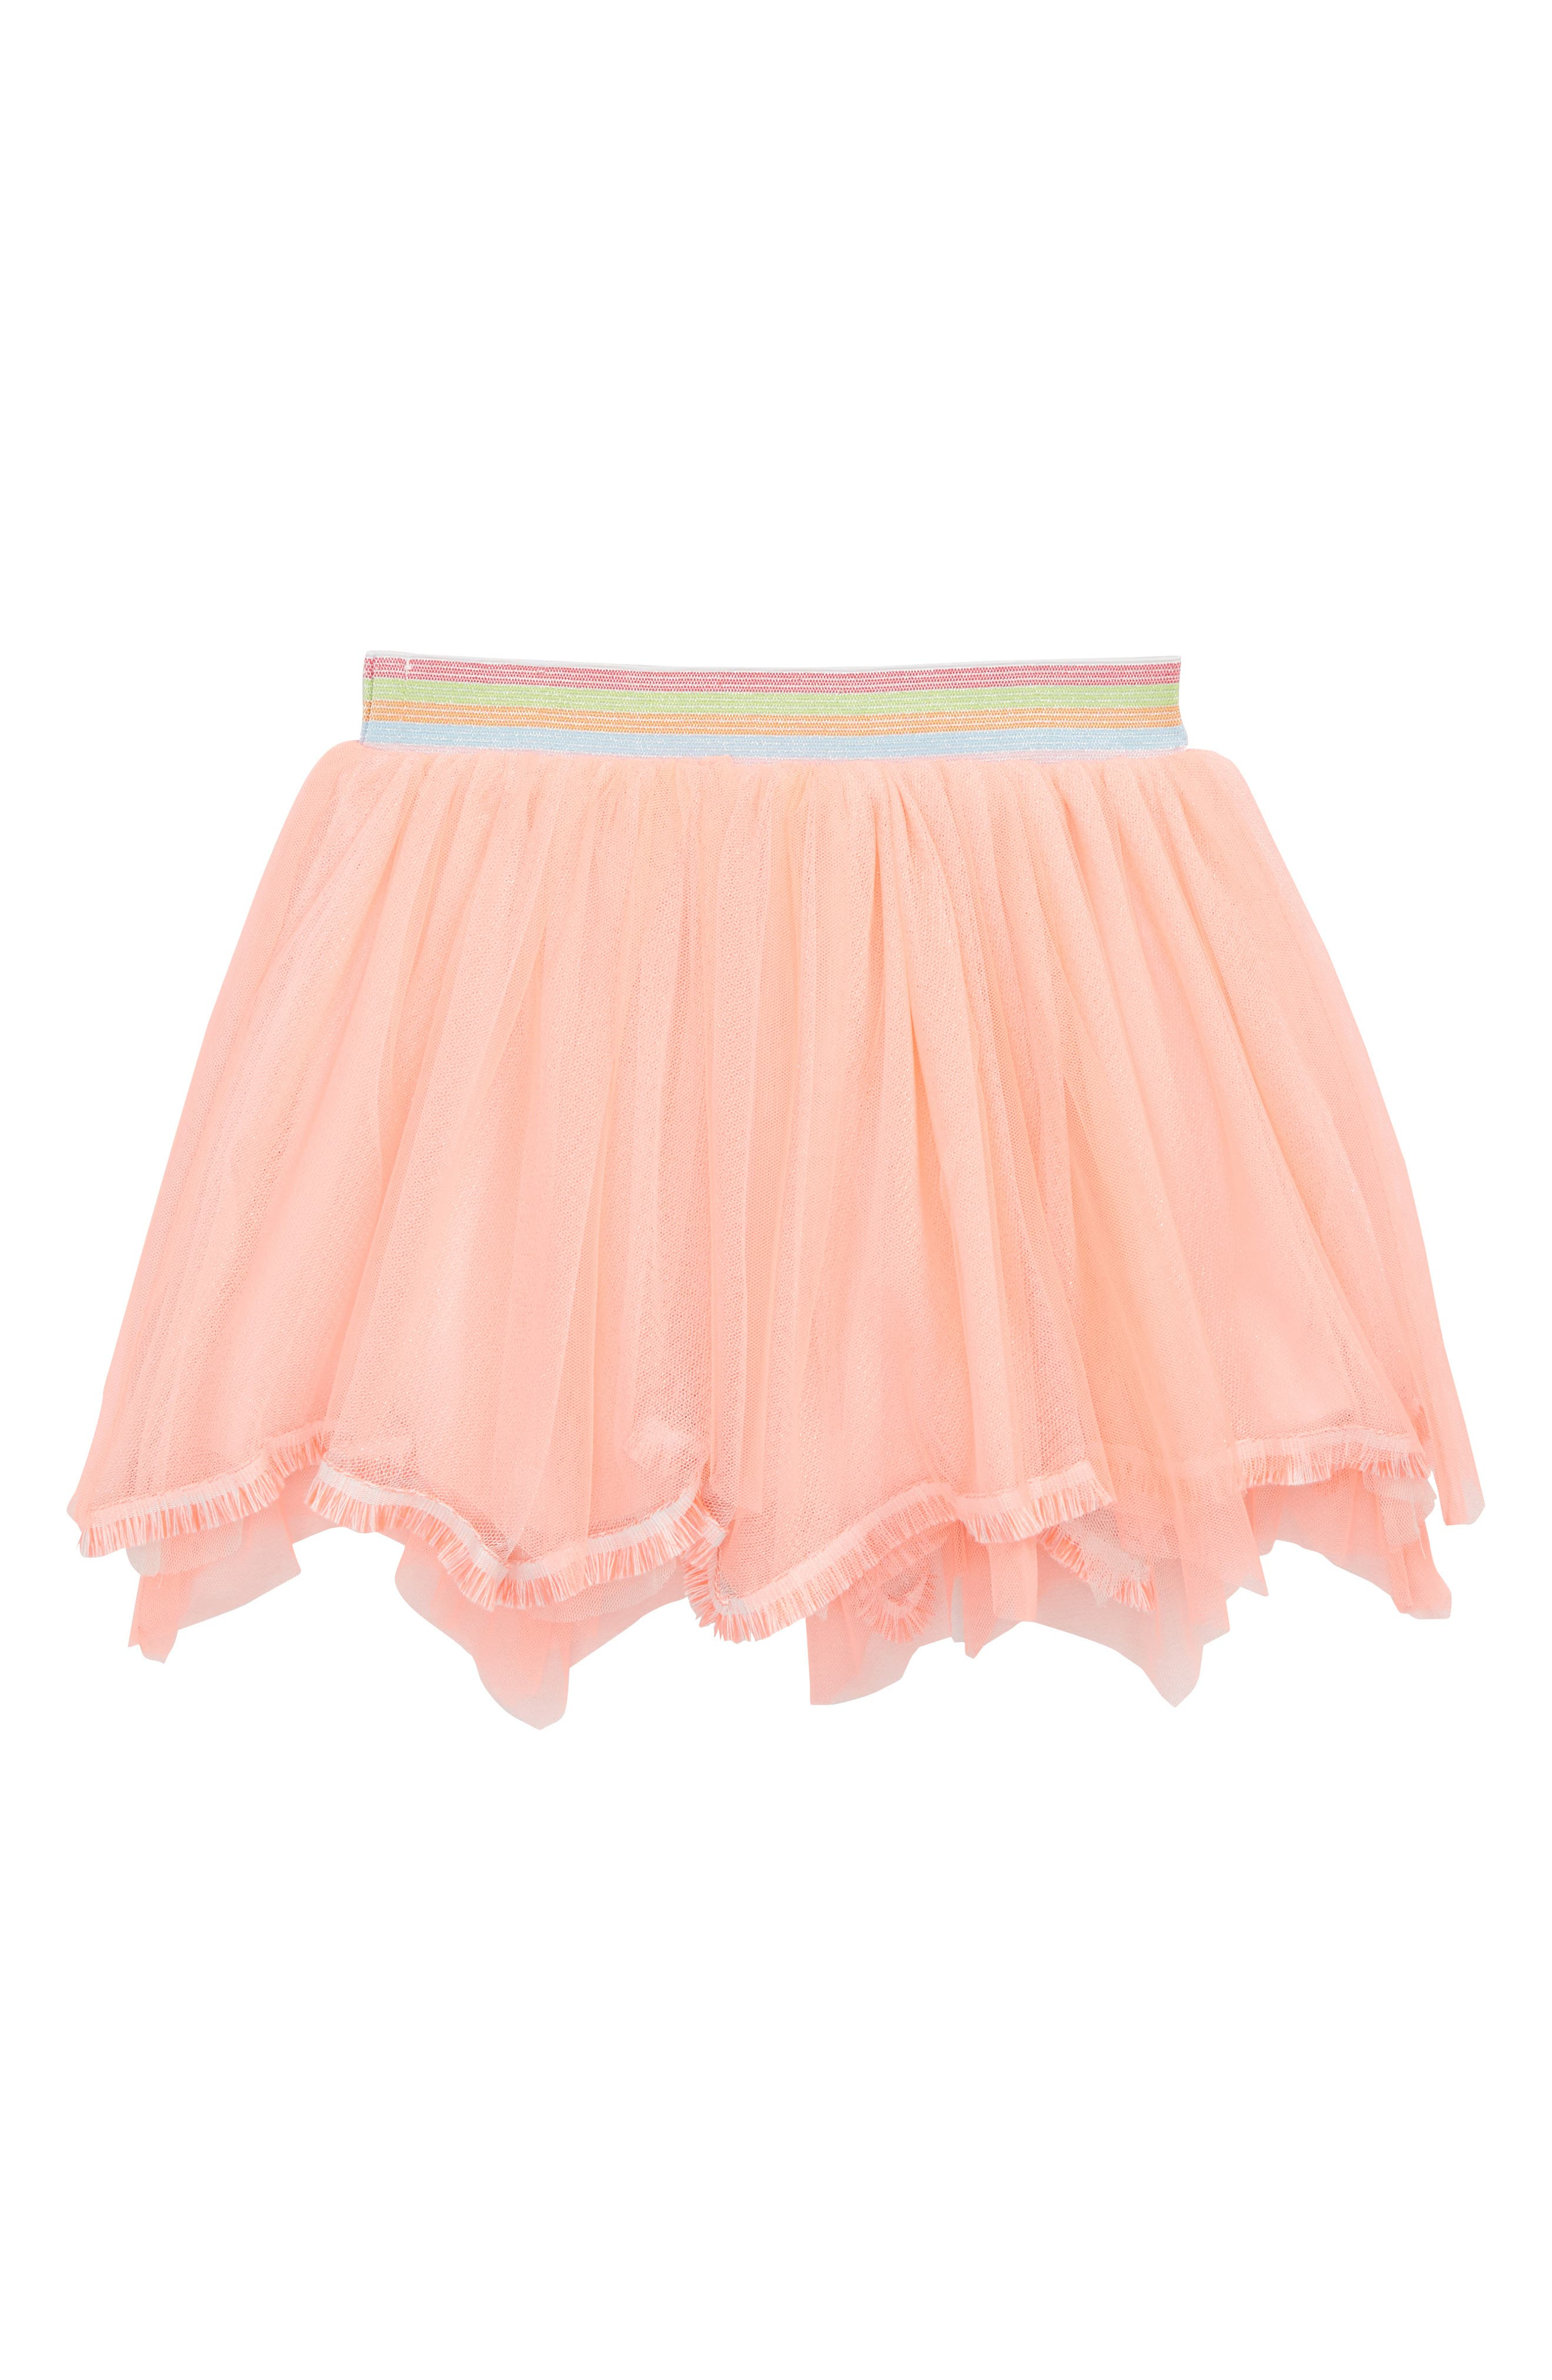 Fringed Hem Tutu Skirt,                         Main,                         color, Orange